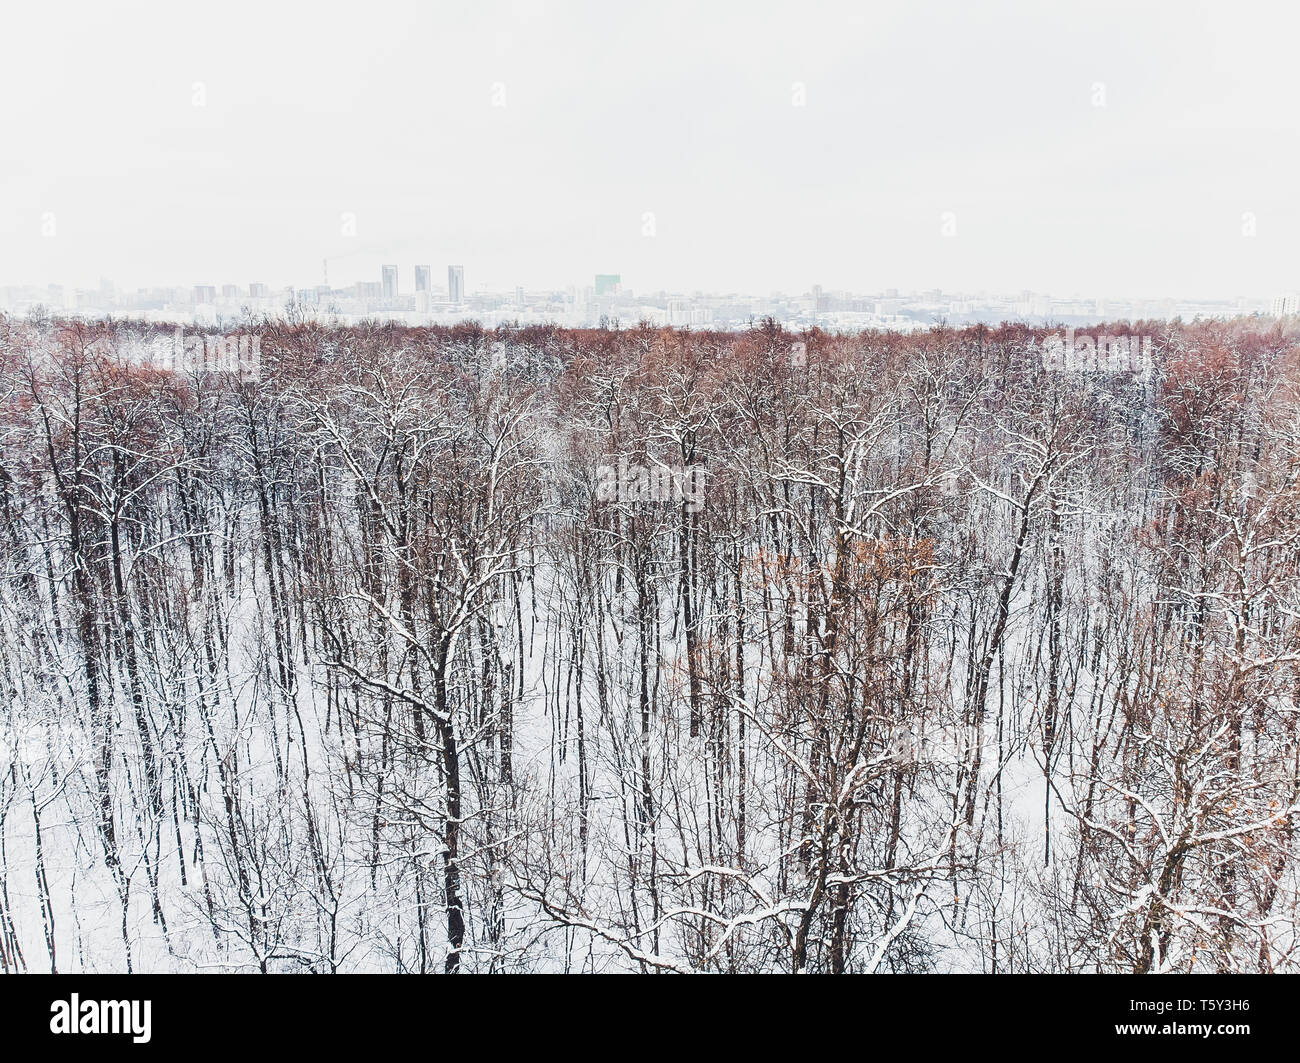 Aerial view of snow covered coniferous forest plantations. Rows of spruces in sunlight. - Stock Image